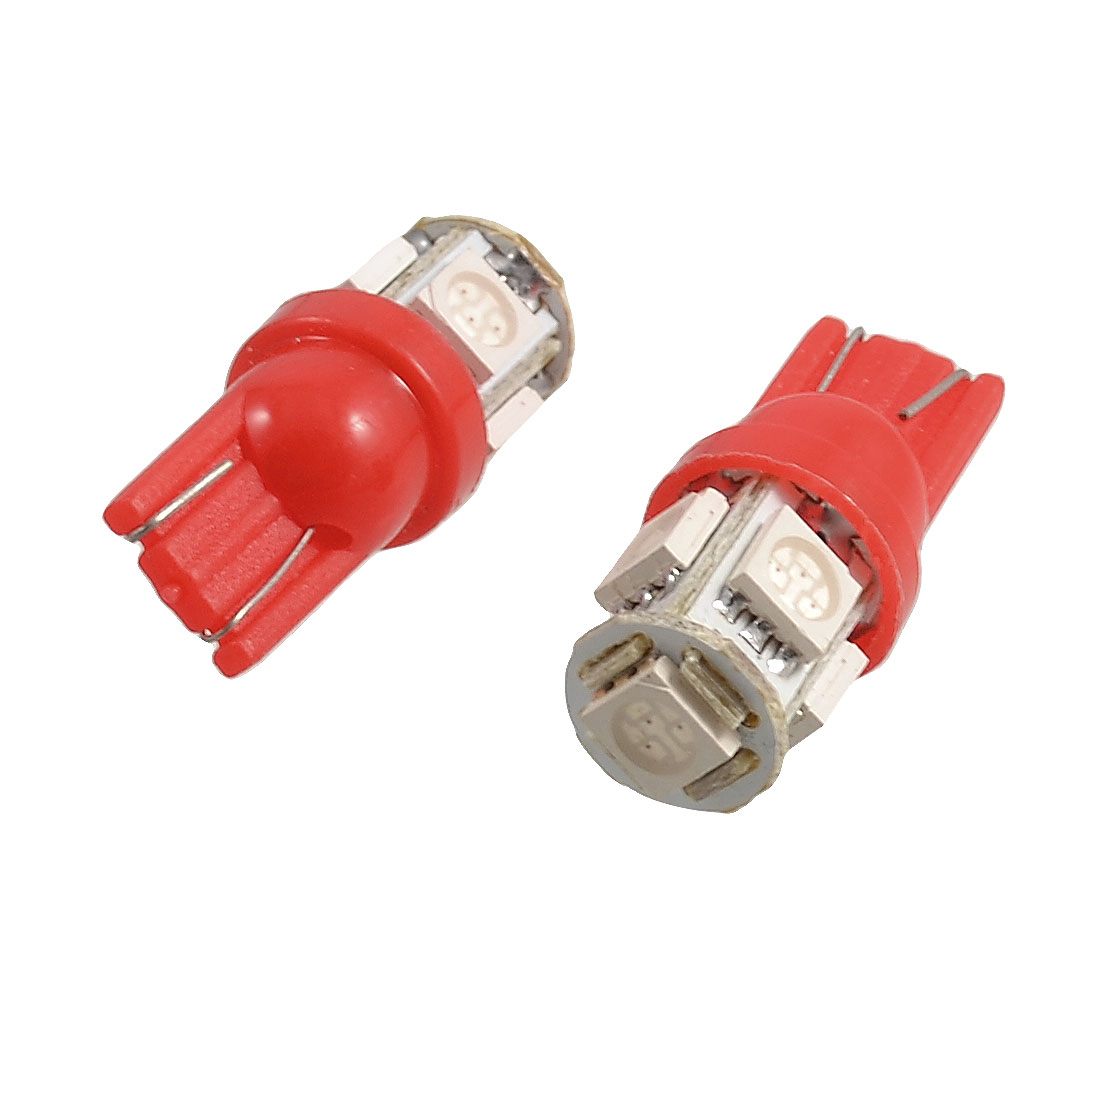 2 x T10 194 168 W5W 5050 SMD 5 LED Car Side Marker Light Bulb Lamp Red 12V